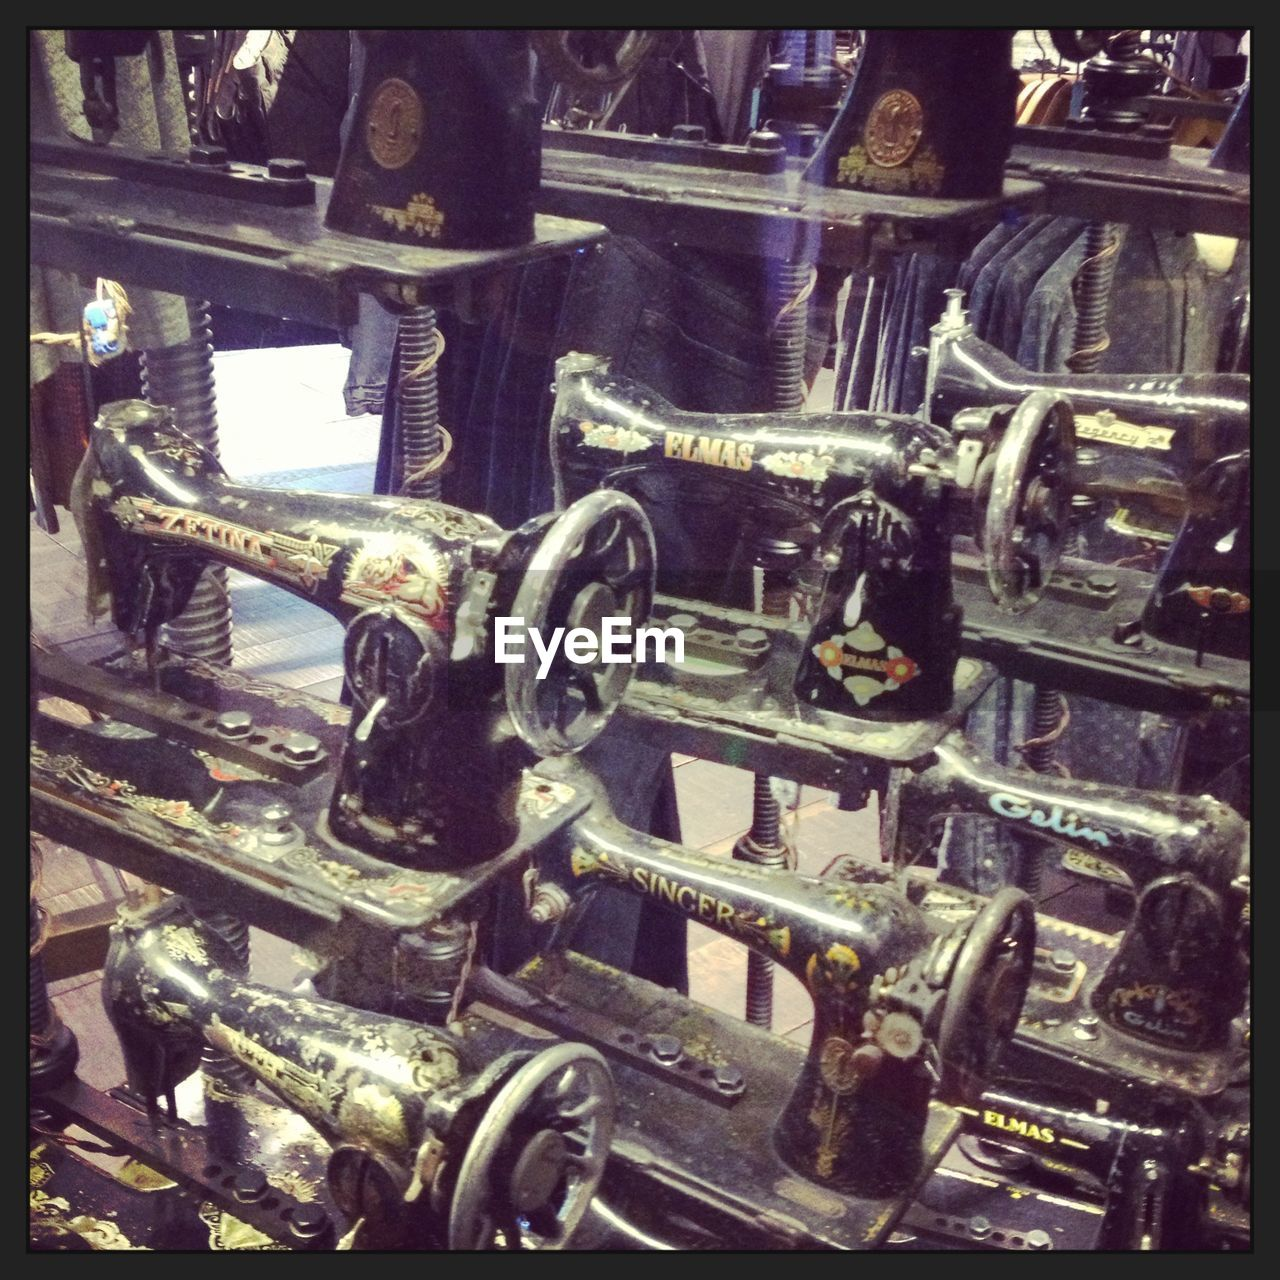 metal, machine part, engine, machinery, no people, industry, indoors, automobile industry, manufacturing equipment, close-up, gear, factory, car plant, day, oil pump